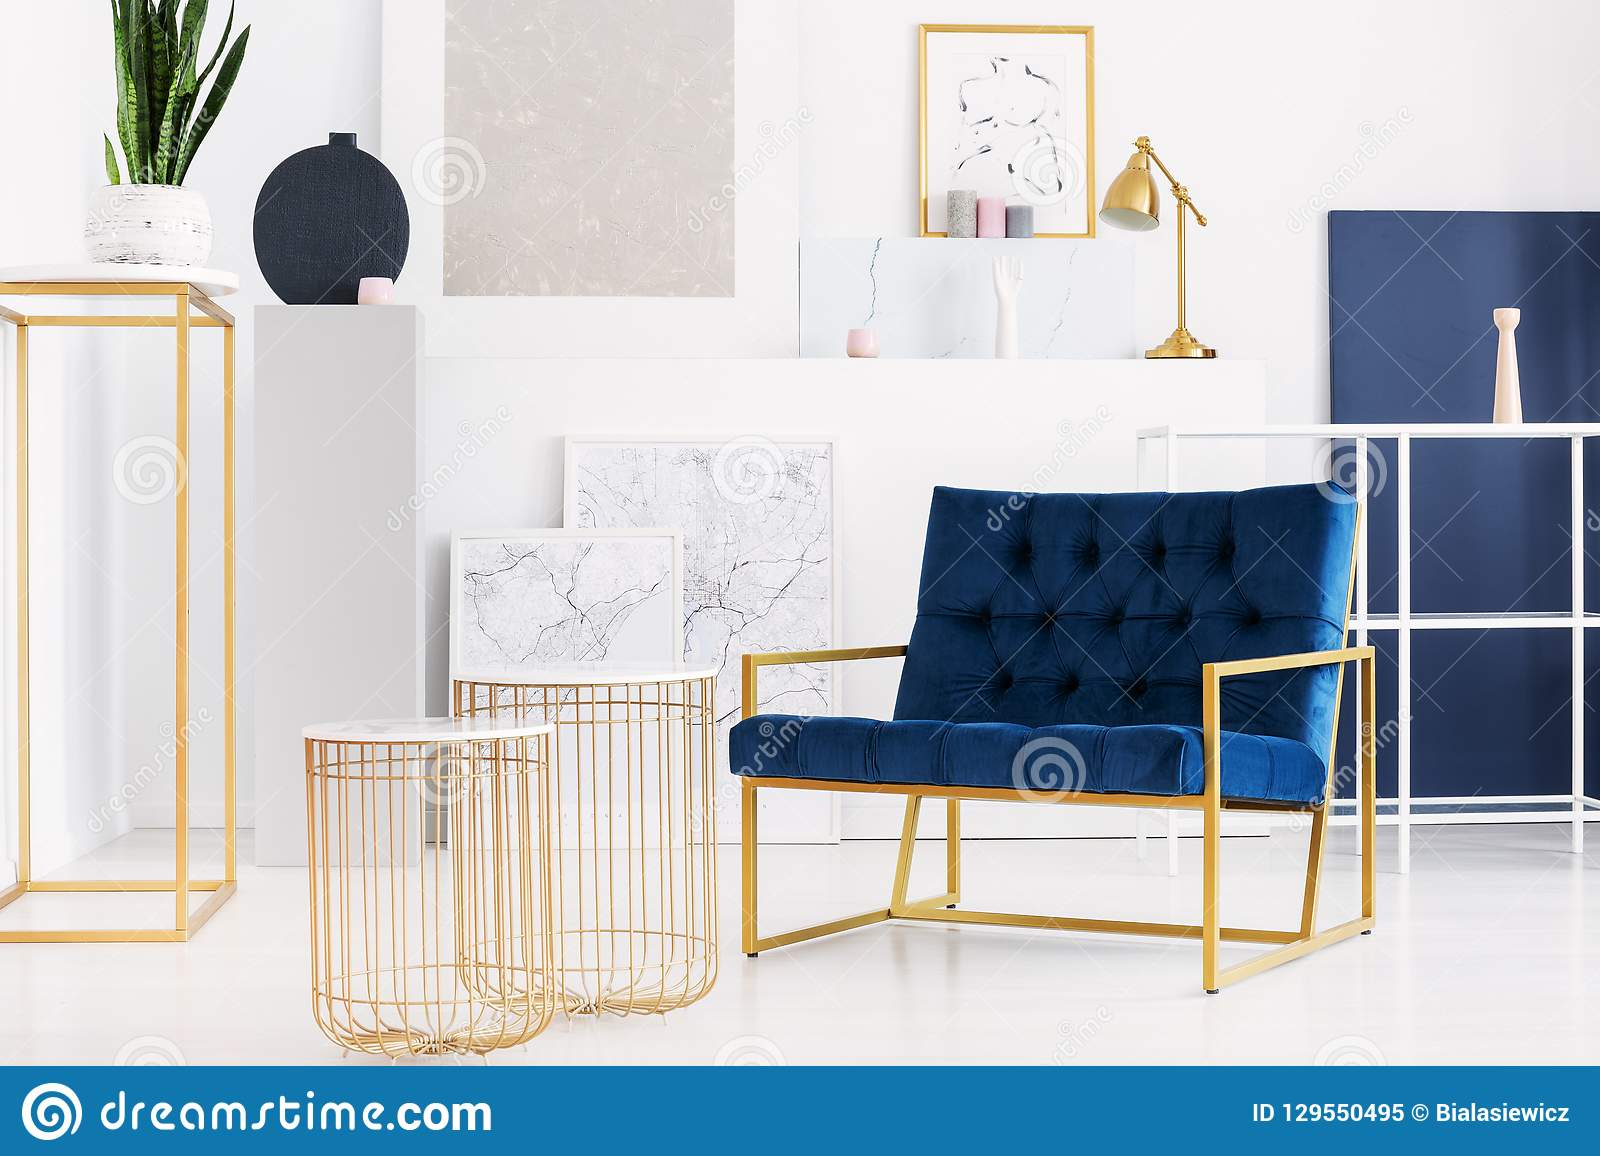 Two stylish tables next to petrol blue armchair in bright living room interior of modern apartment